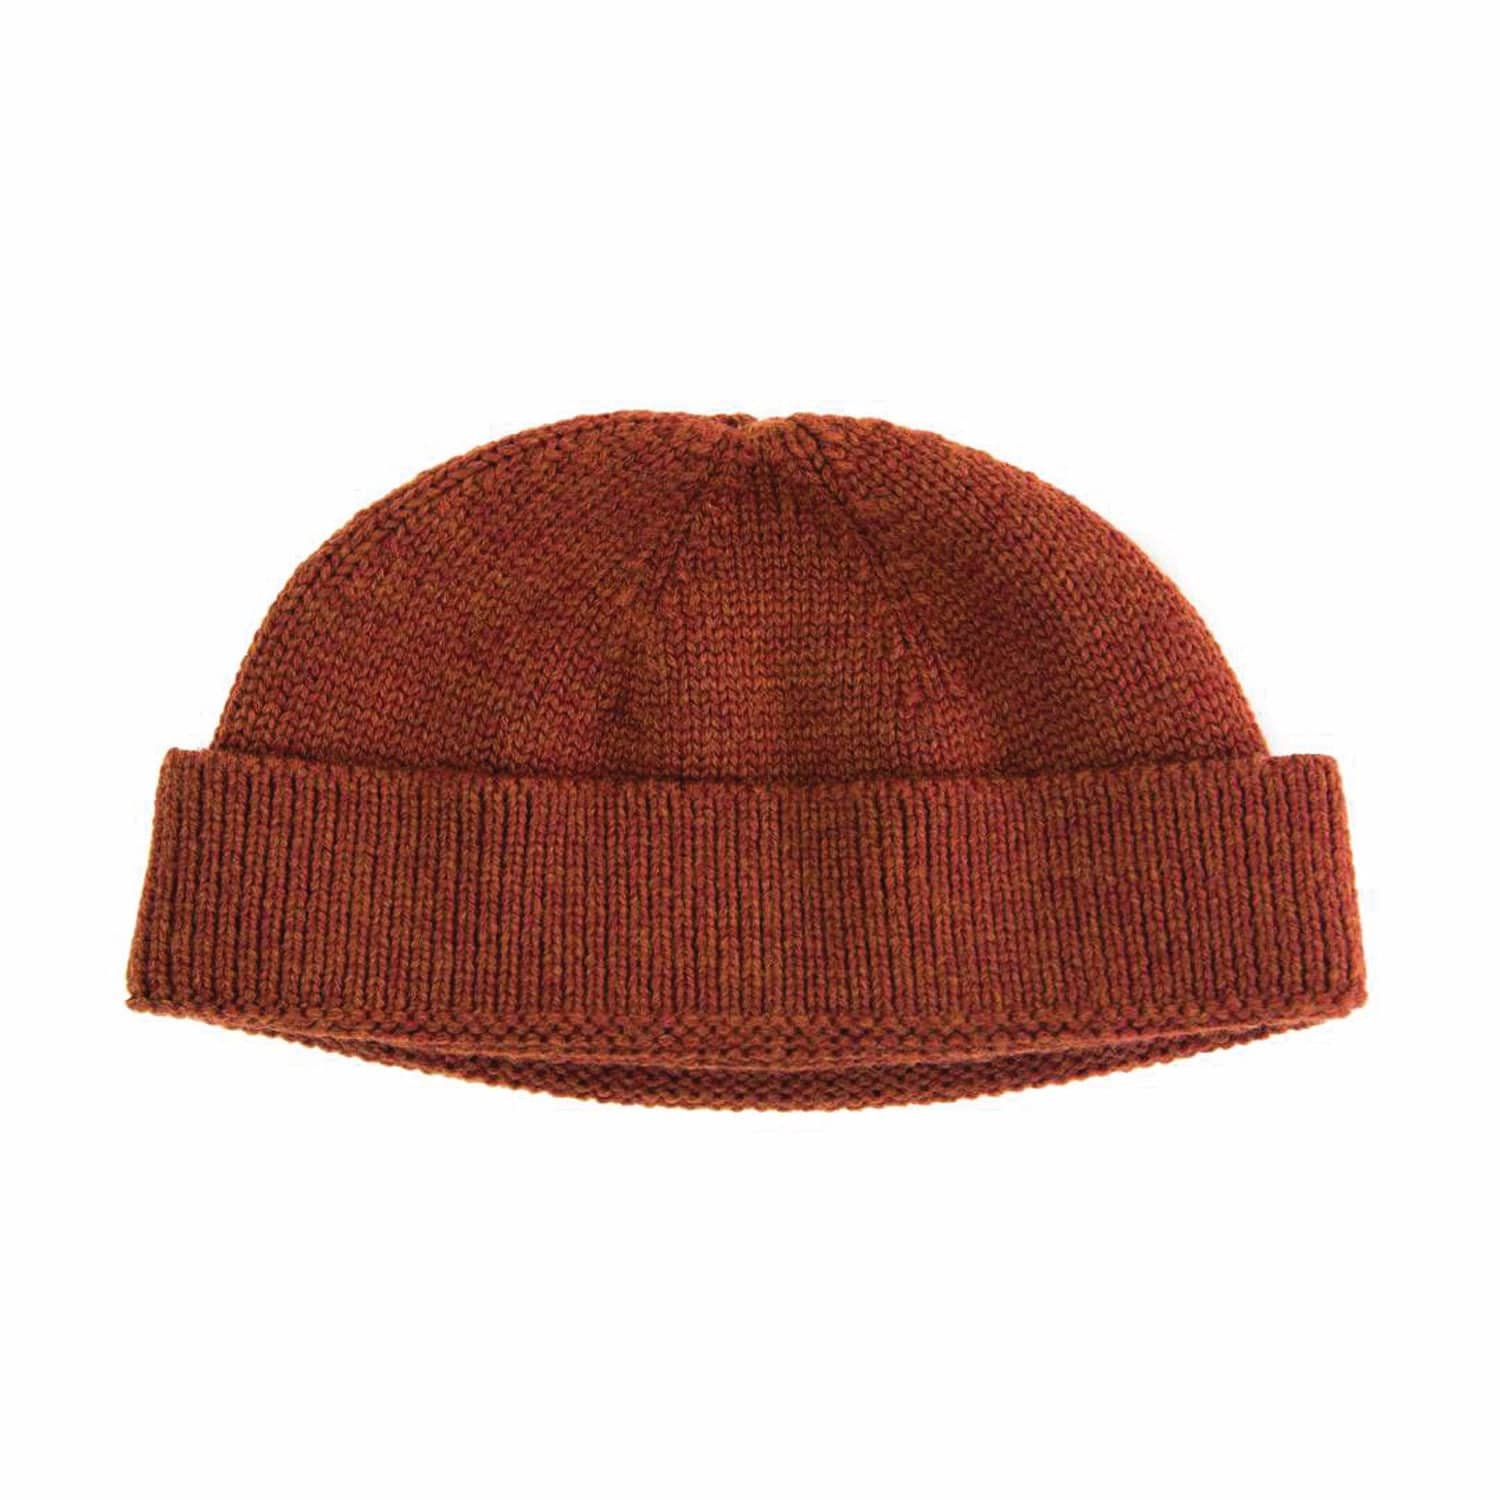 Rust Solid Wool Fisherman Beanie  717a5836267e